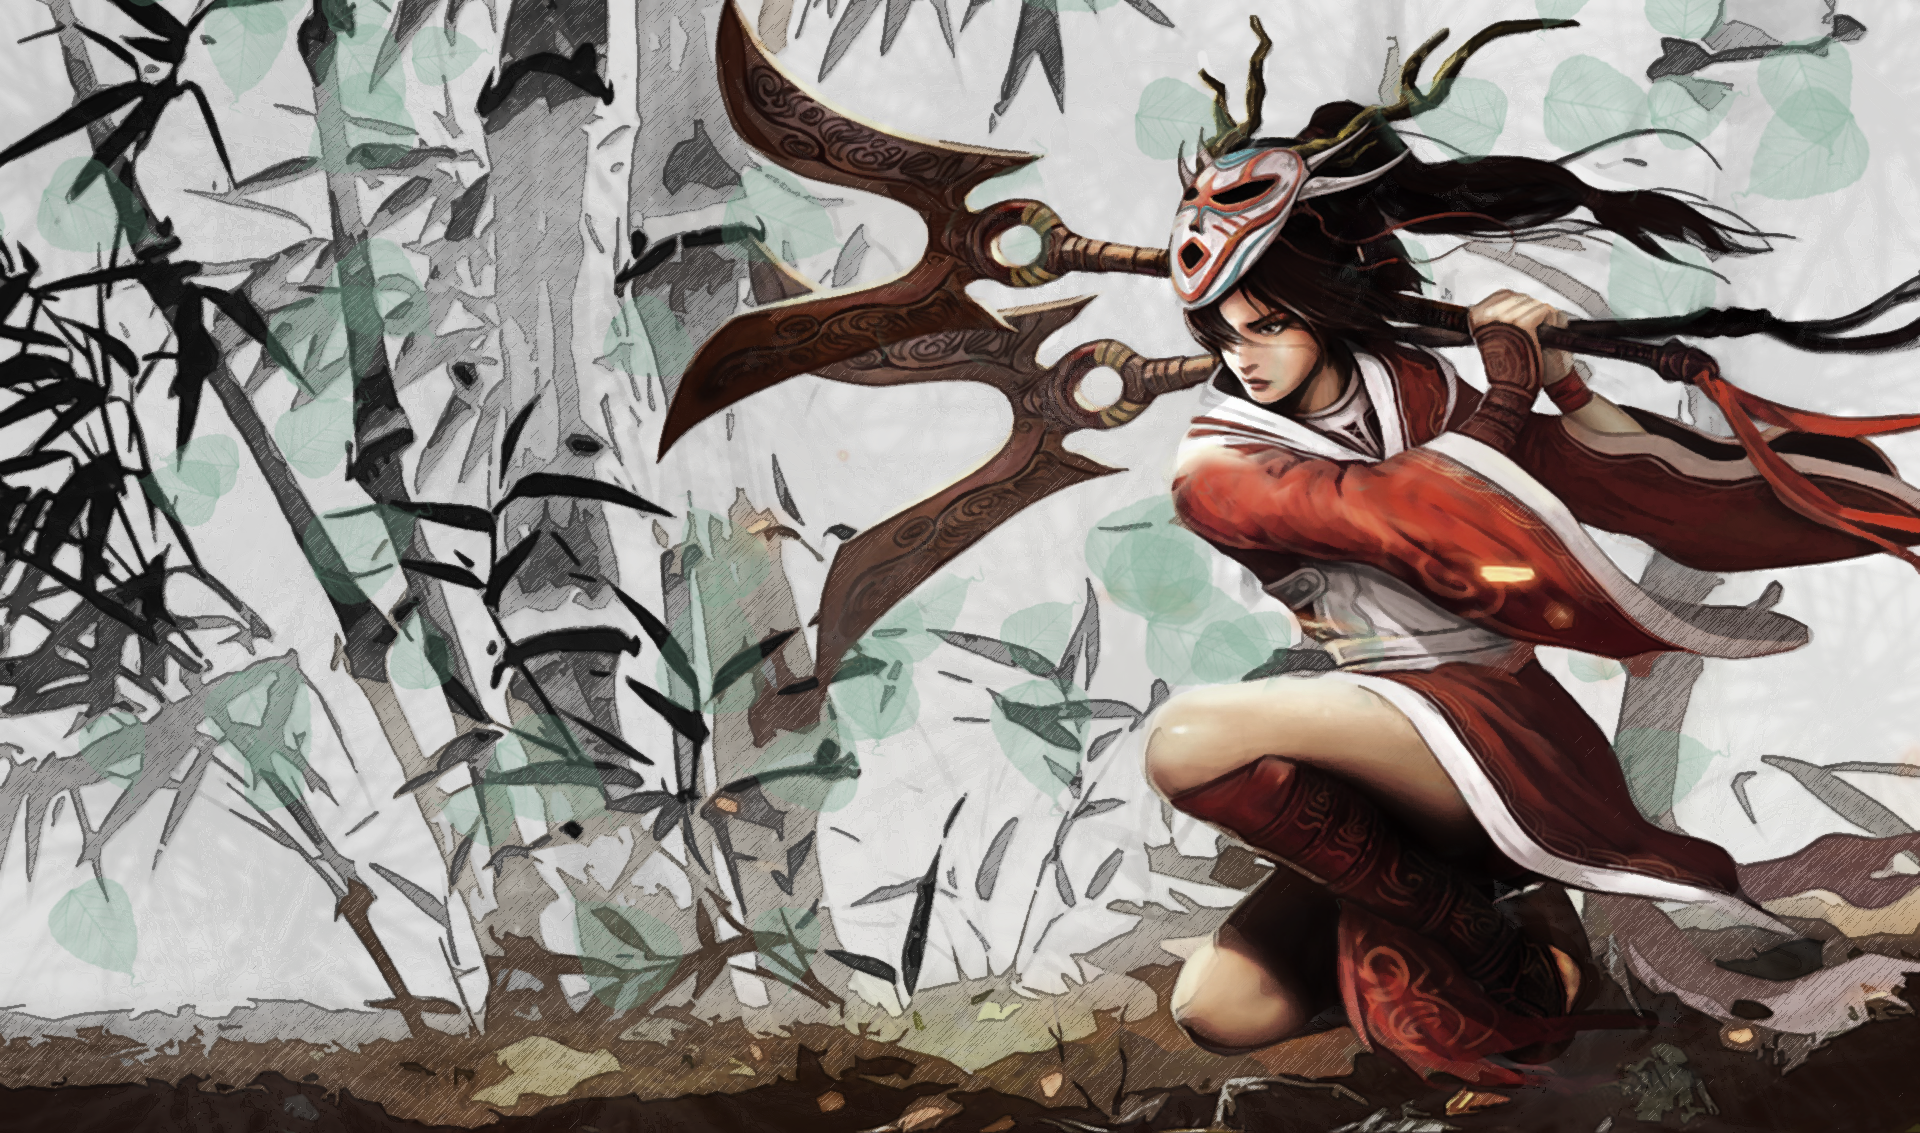 league_of_legends_akali_wallpaper_by_dreaming_myth-d5mfft0